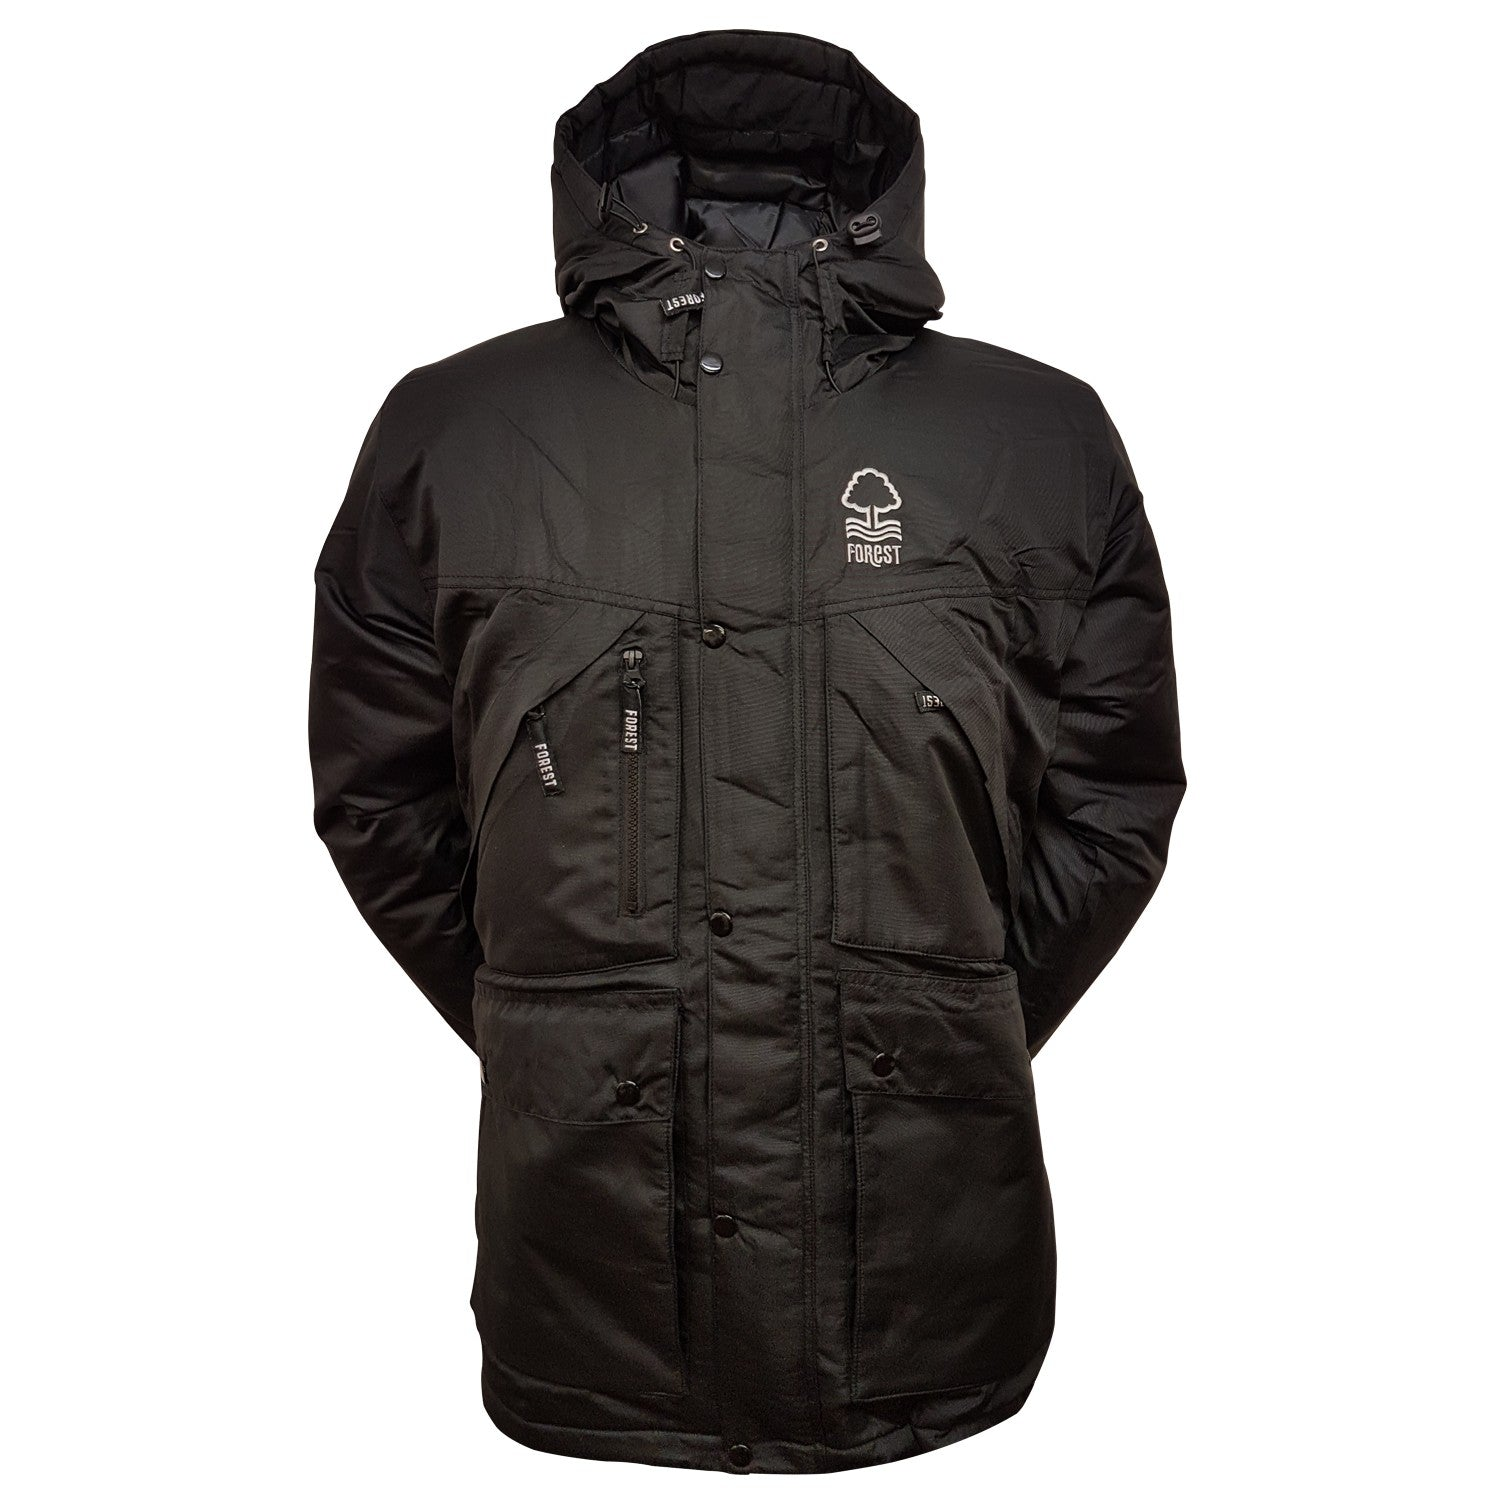 NFFC Womens Black Parka Jacket